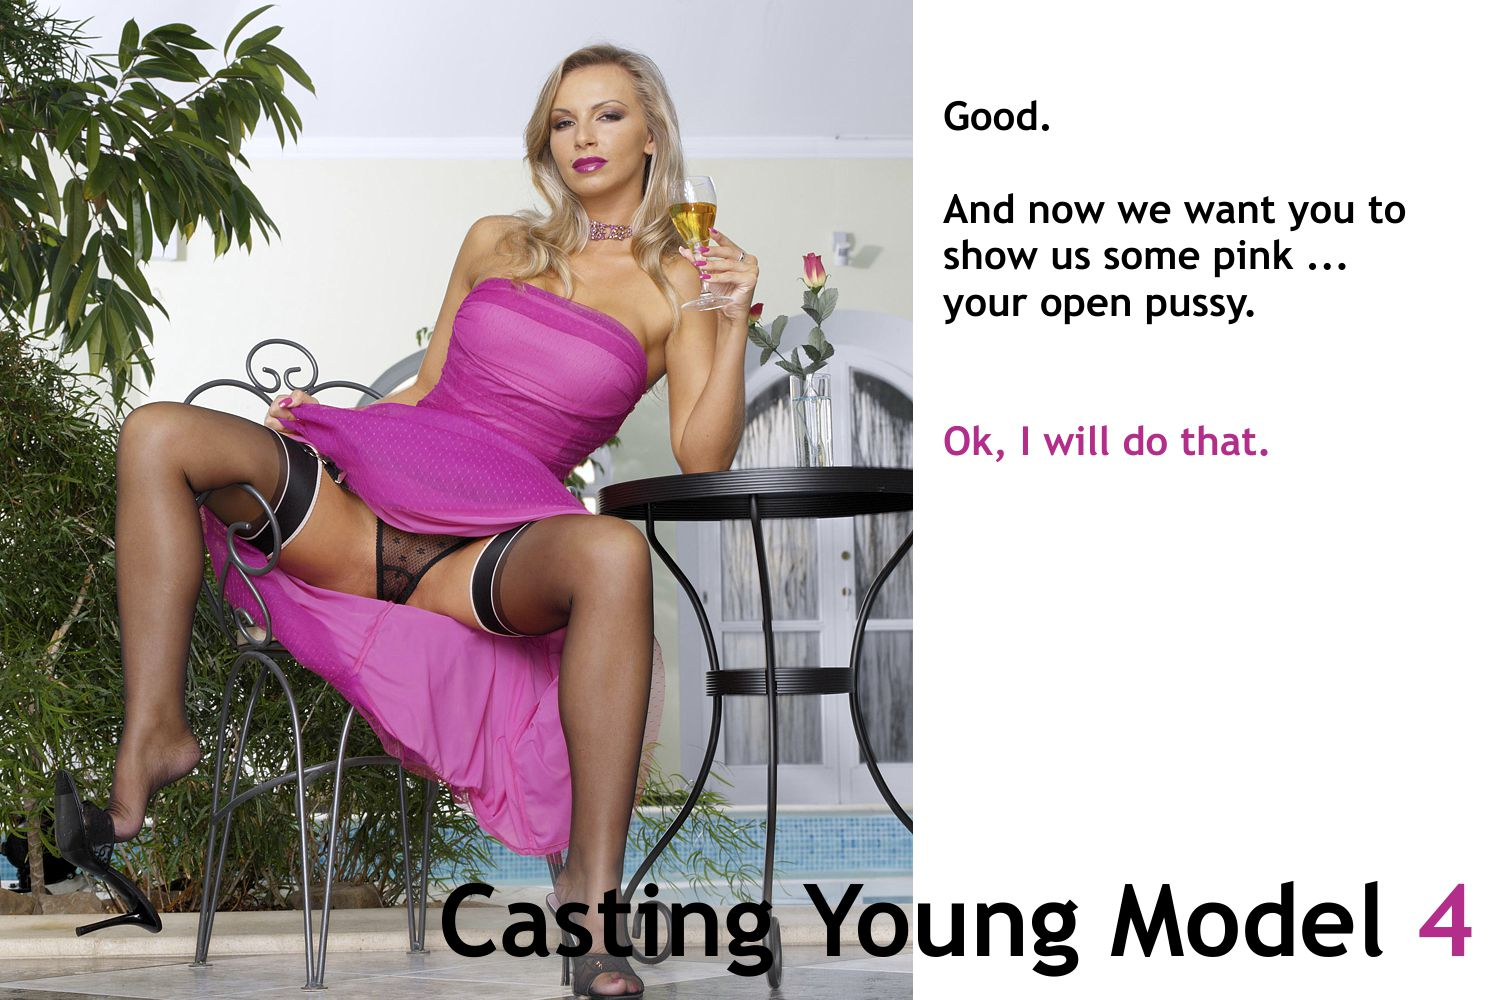 casting_young_model_4_003